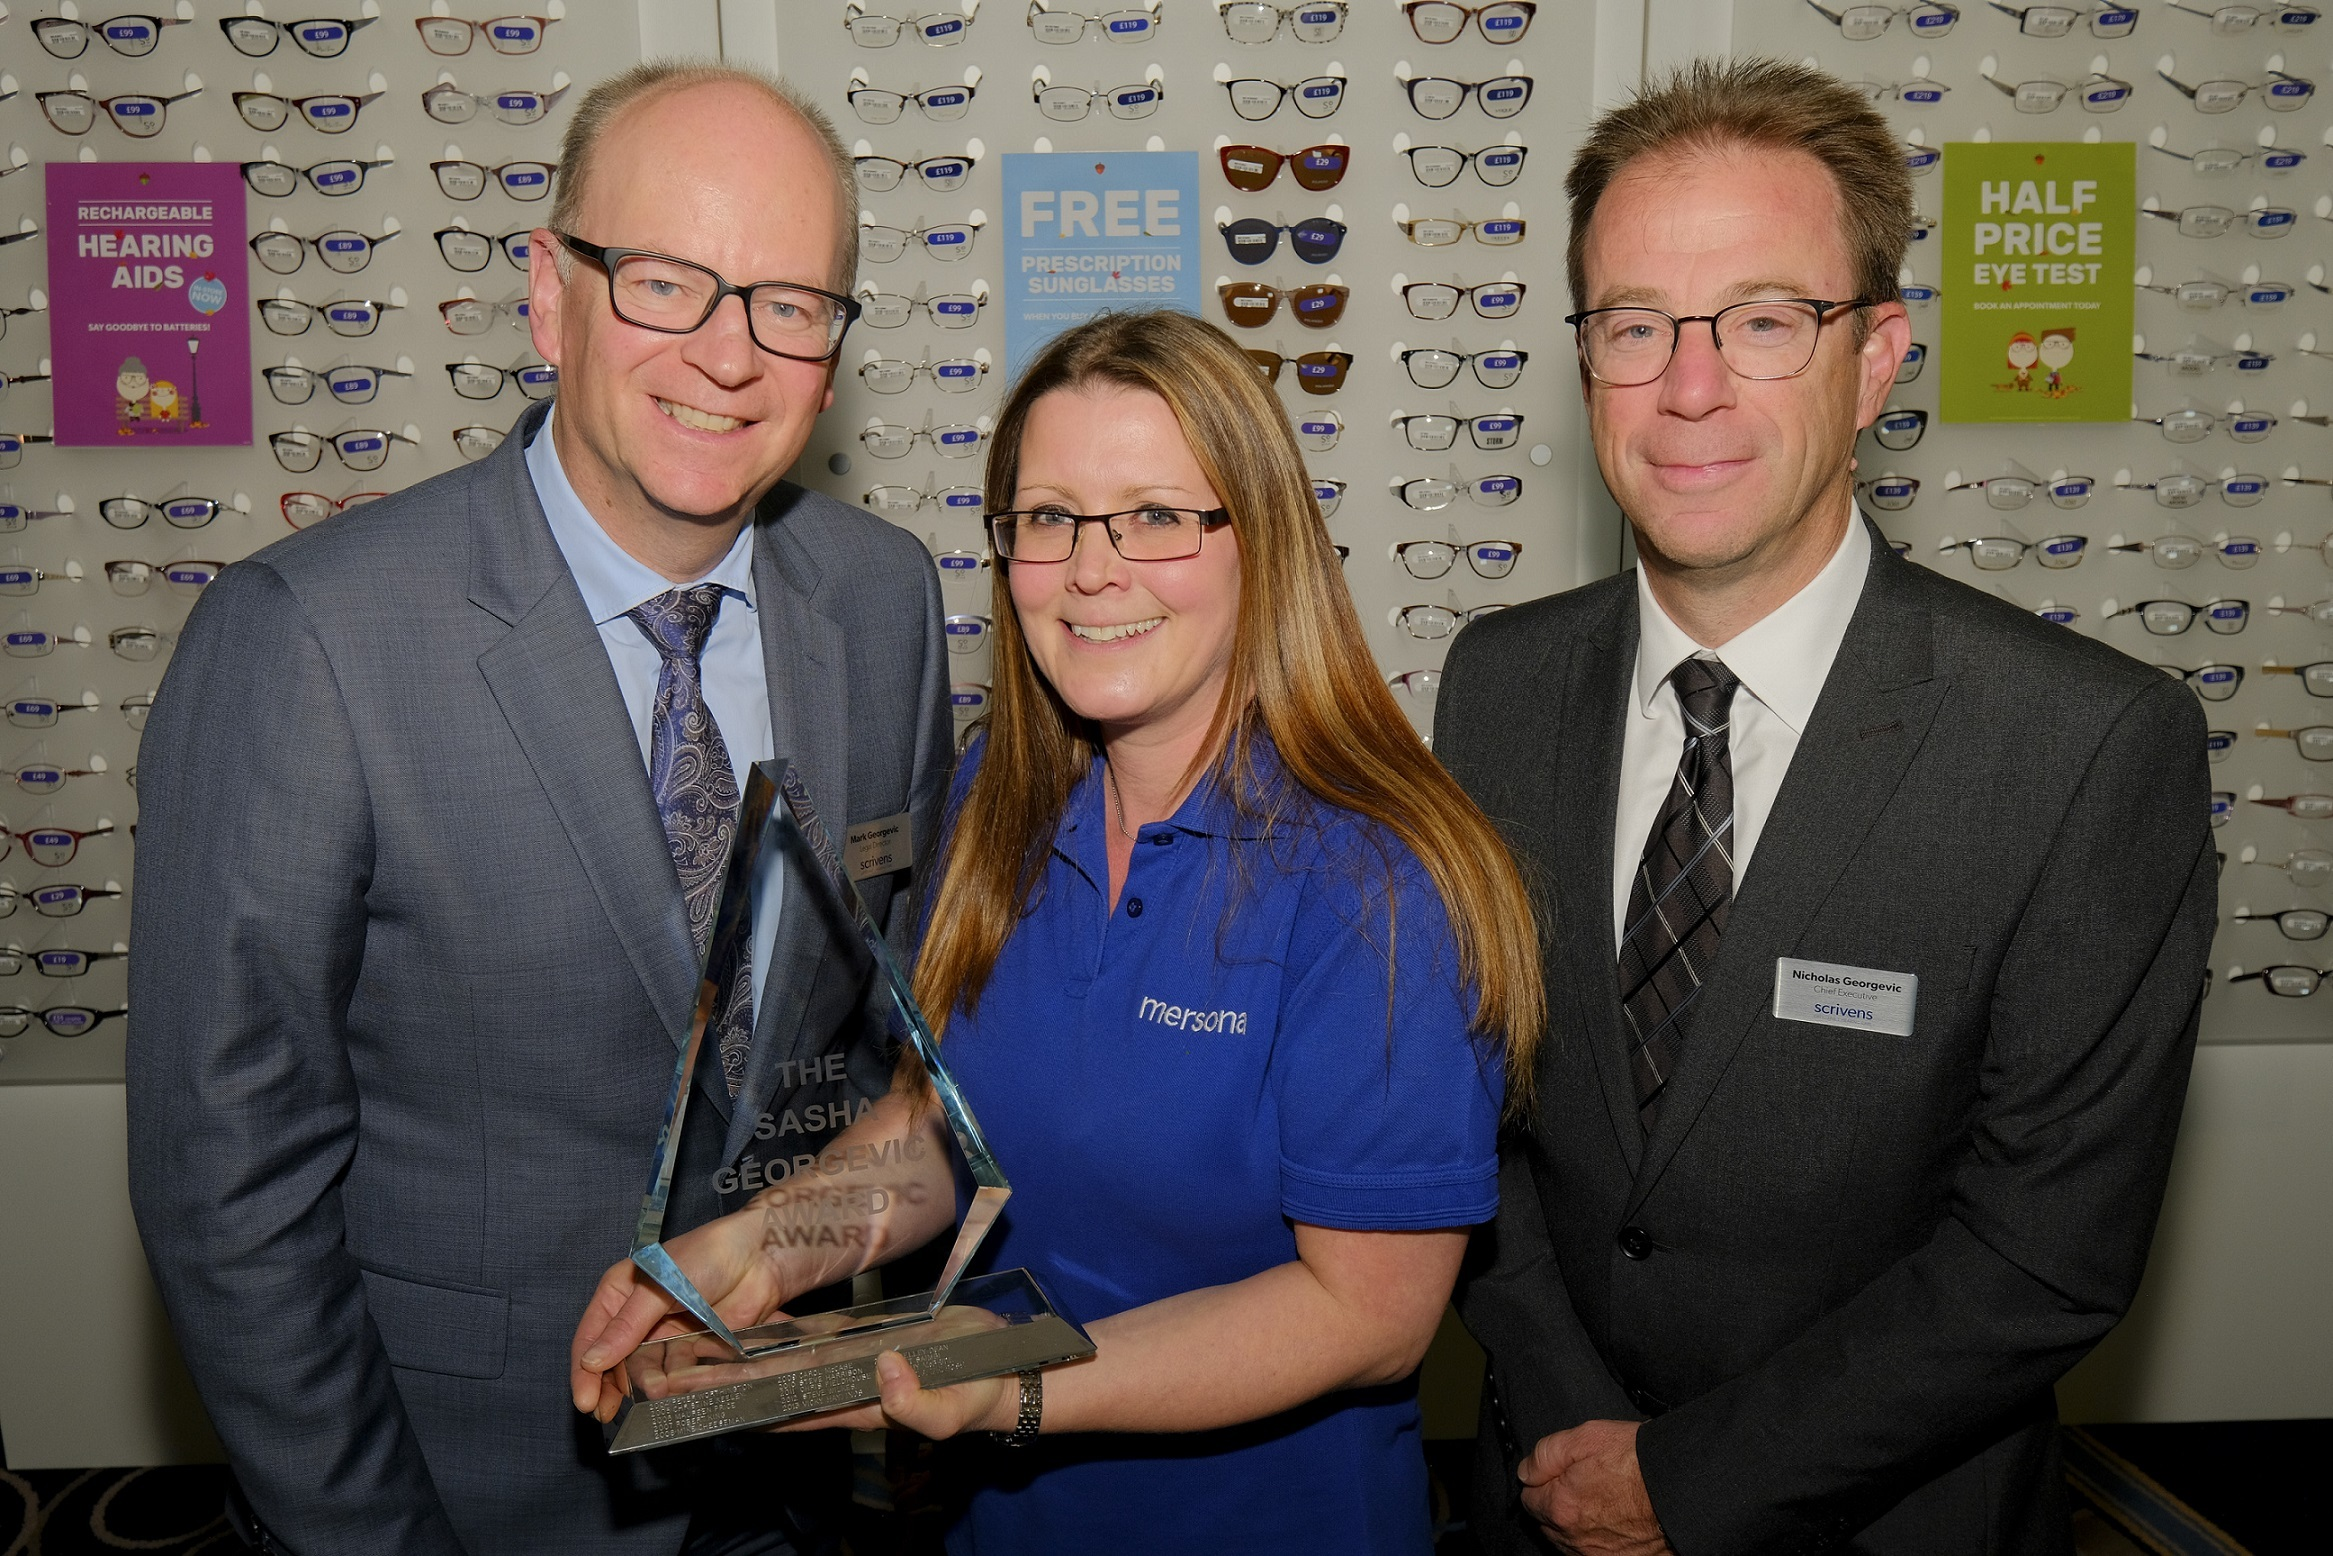 Award winner Angela Melrose, with Scrivens Opticians' Mark and Nicholas Georgevic.